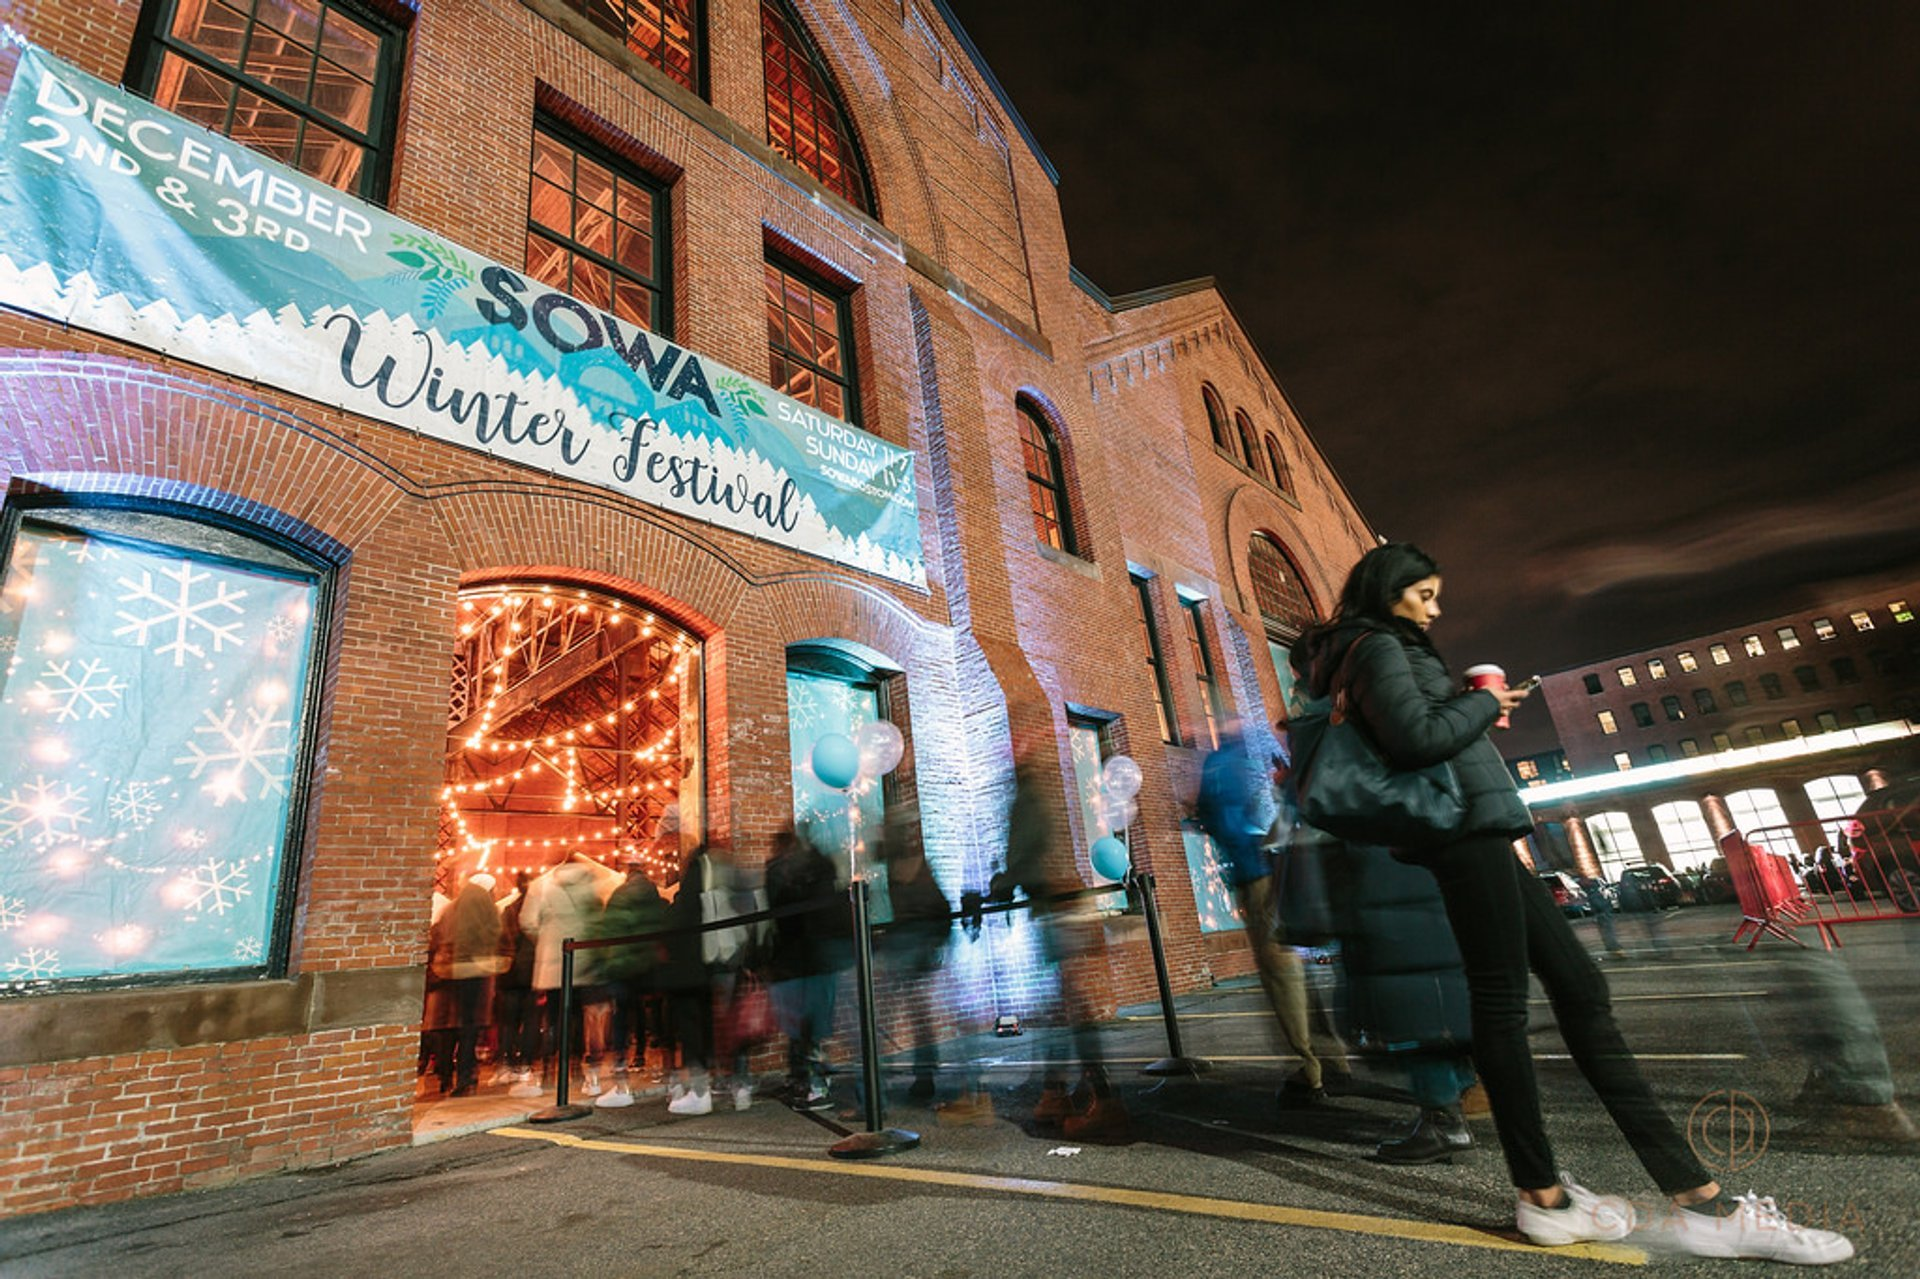 SoWa Winter Festival in Boston 2020 - Best Time